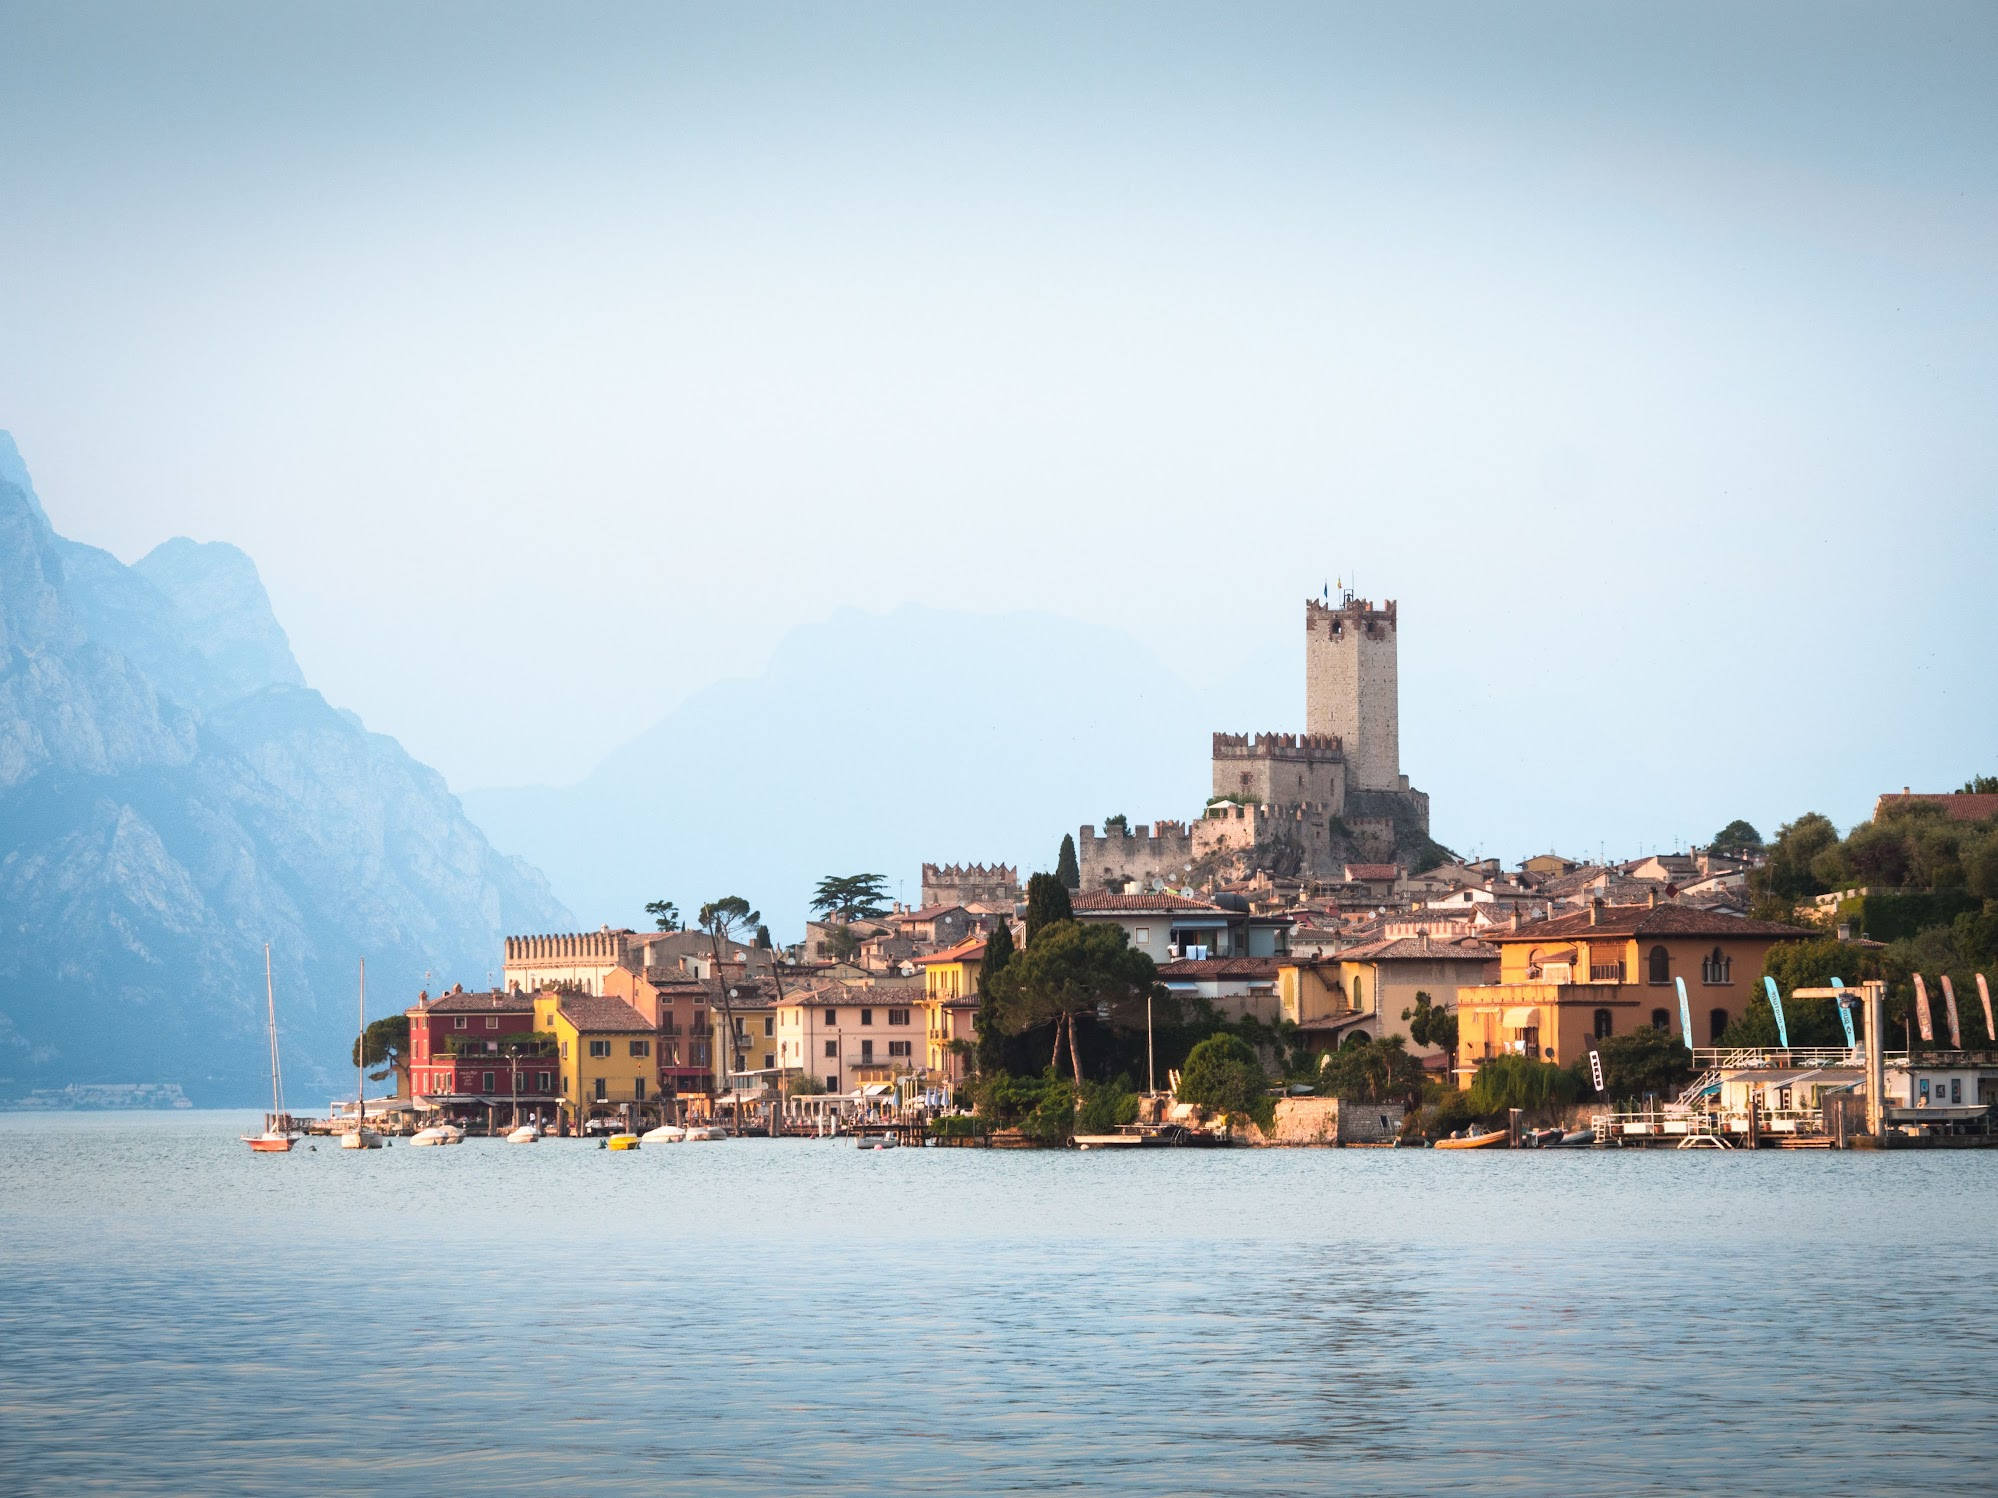 Malcesine by Lake Garda is a small resort town worth visiting during your trip to Northern Italy